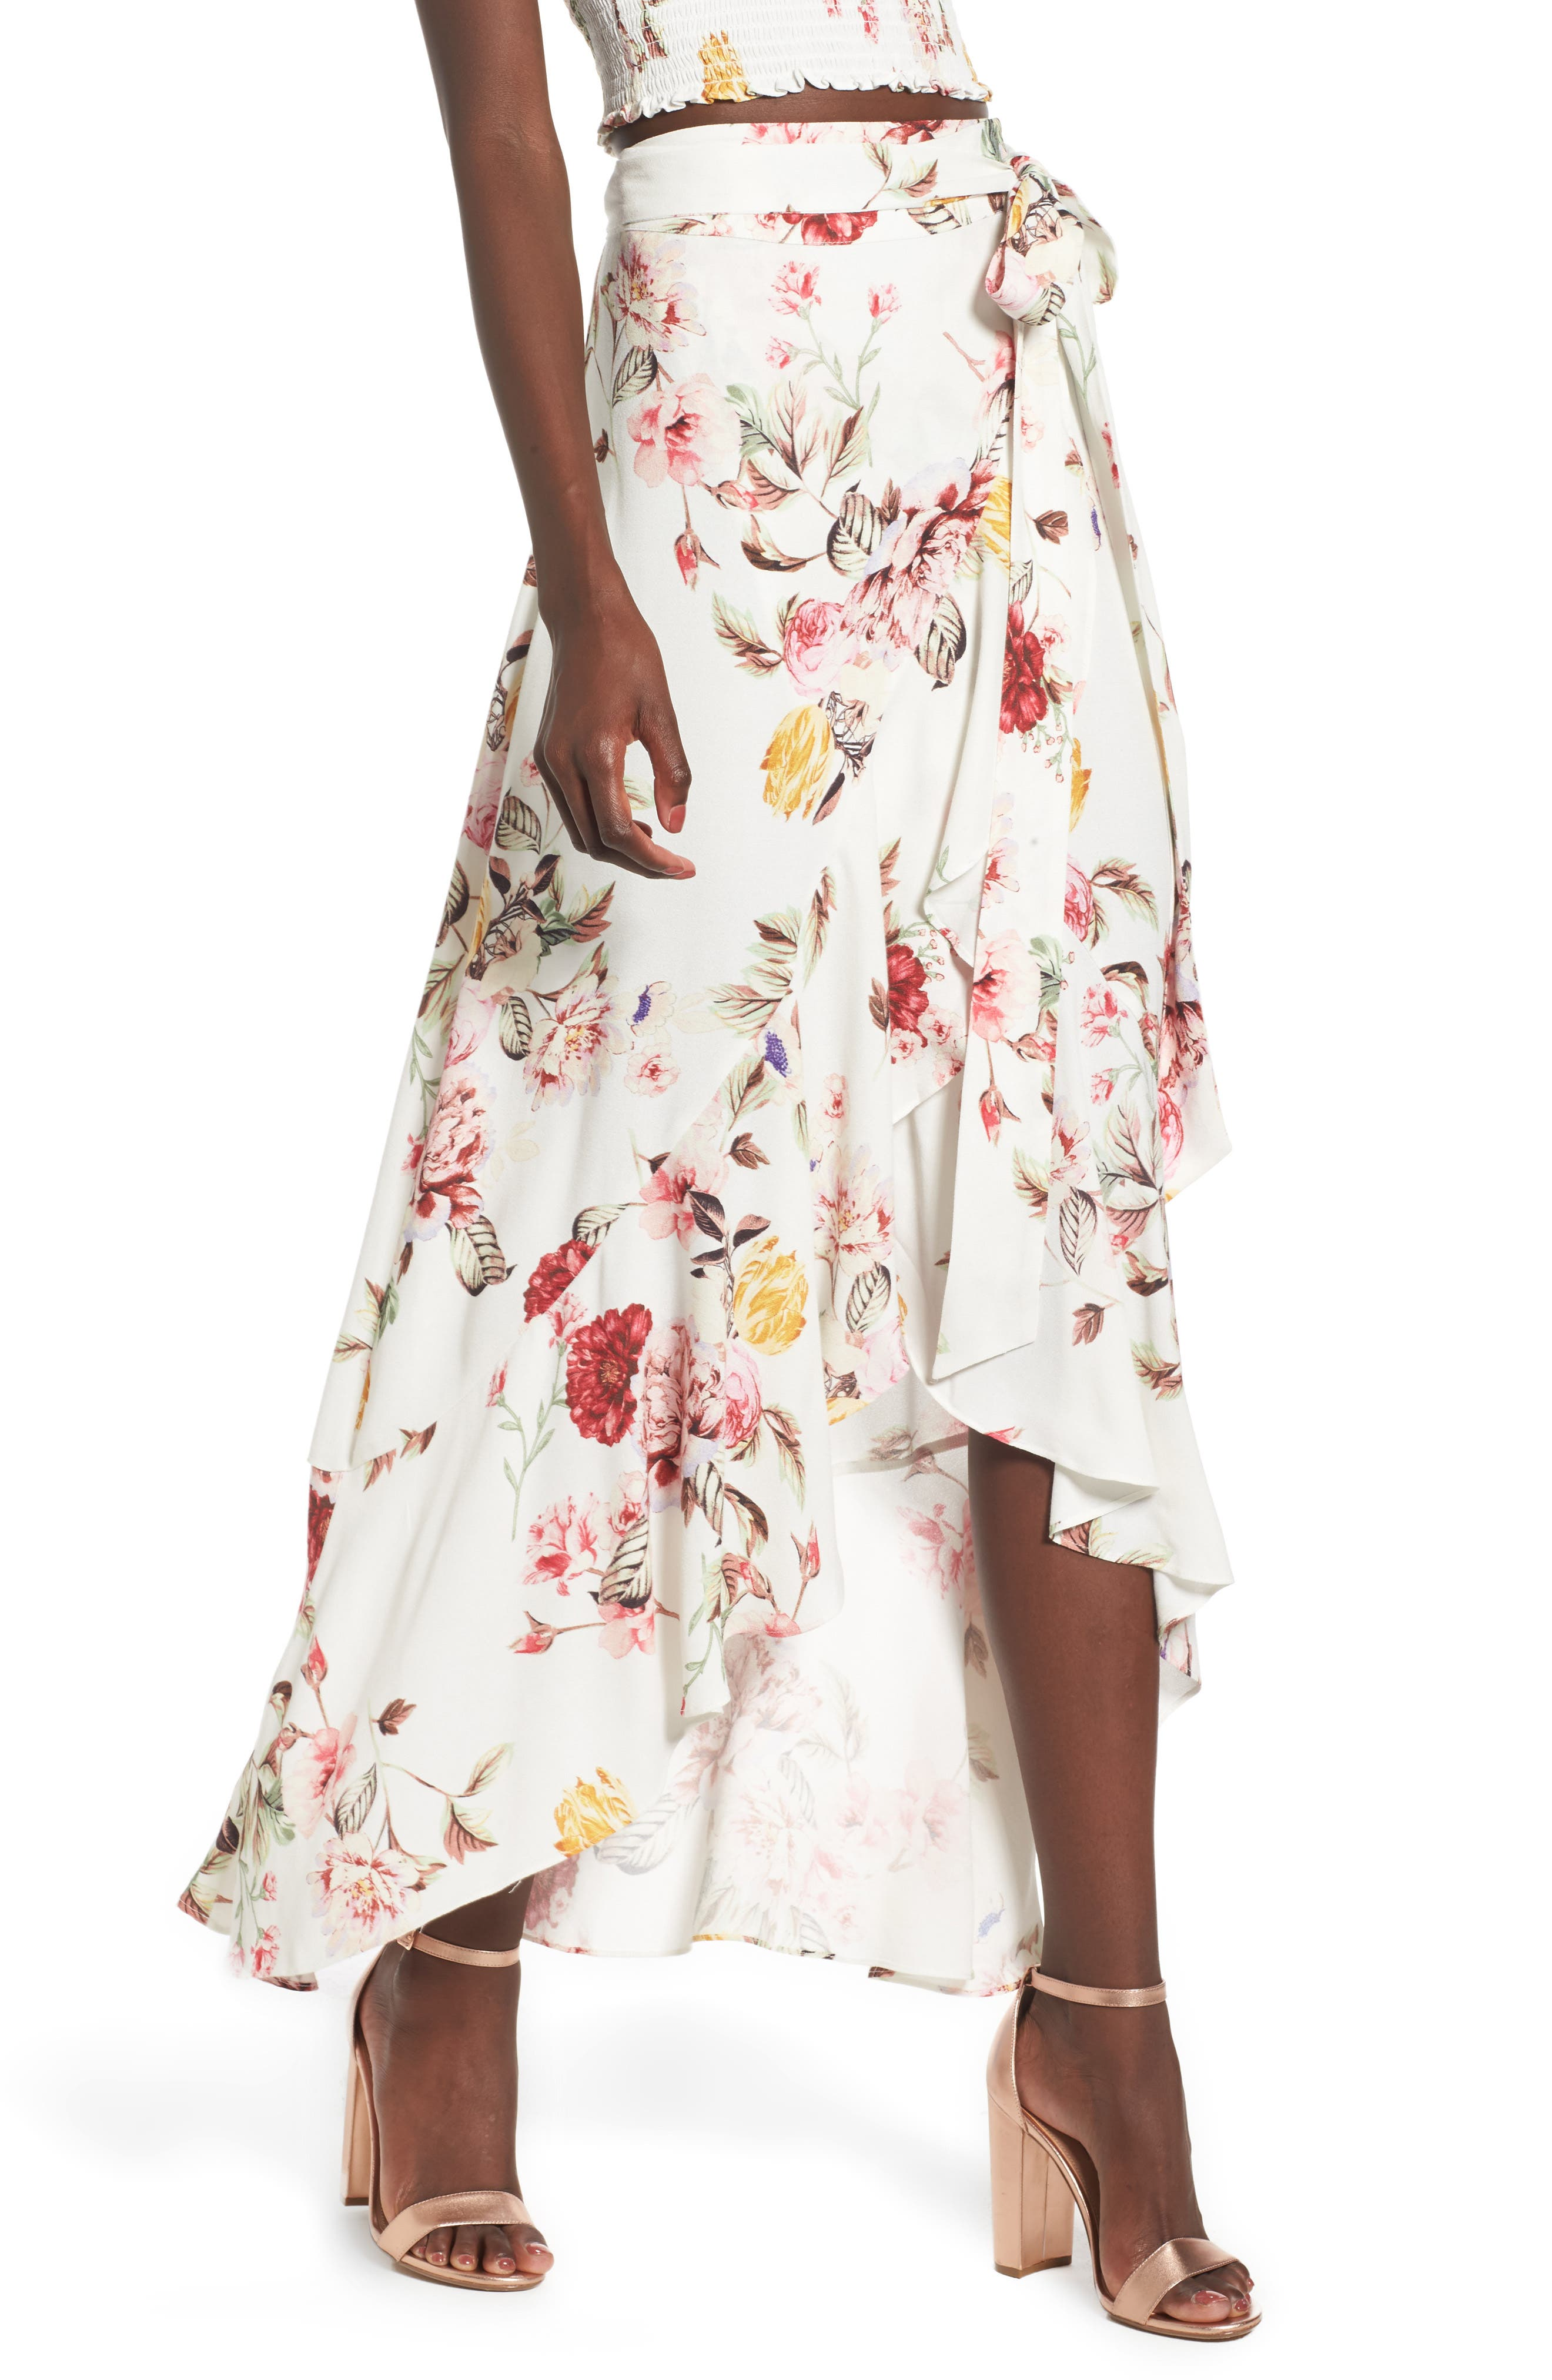 Alternate Image 1 Selected - AFRM Amelia Ruffle Wrap Skirt